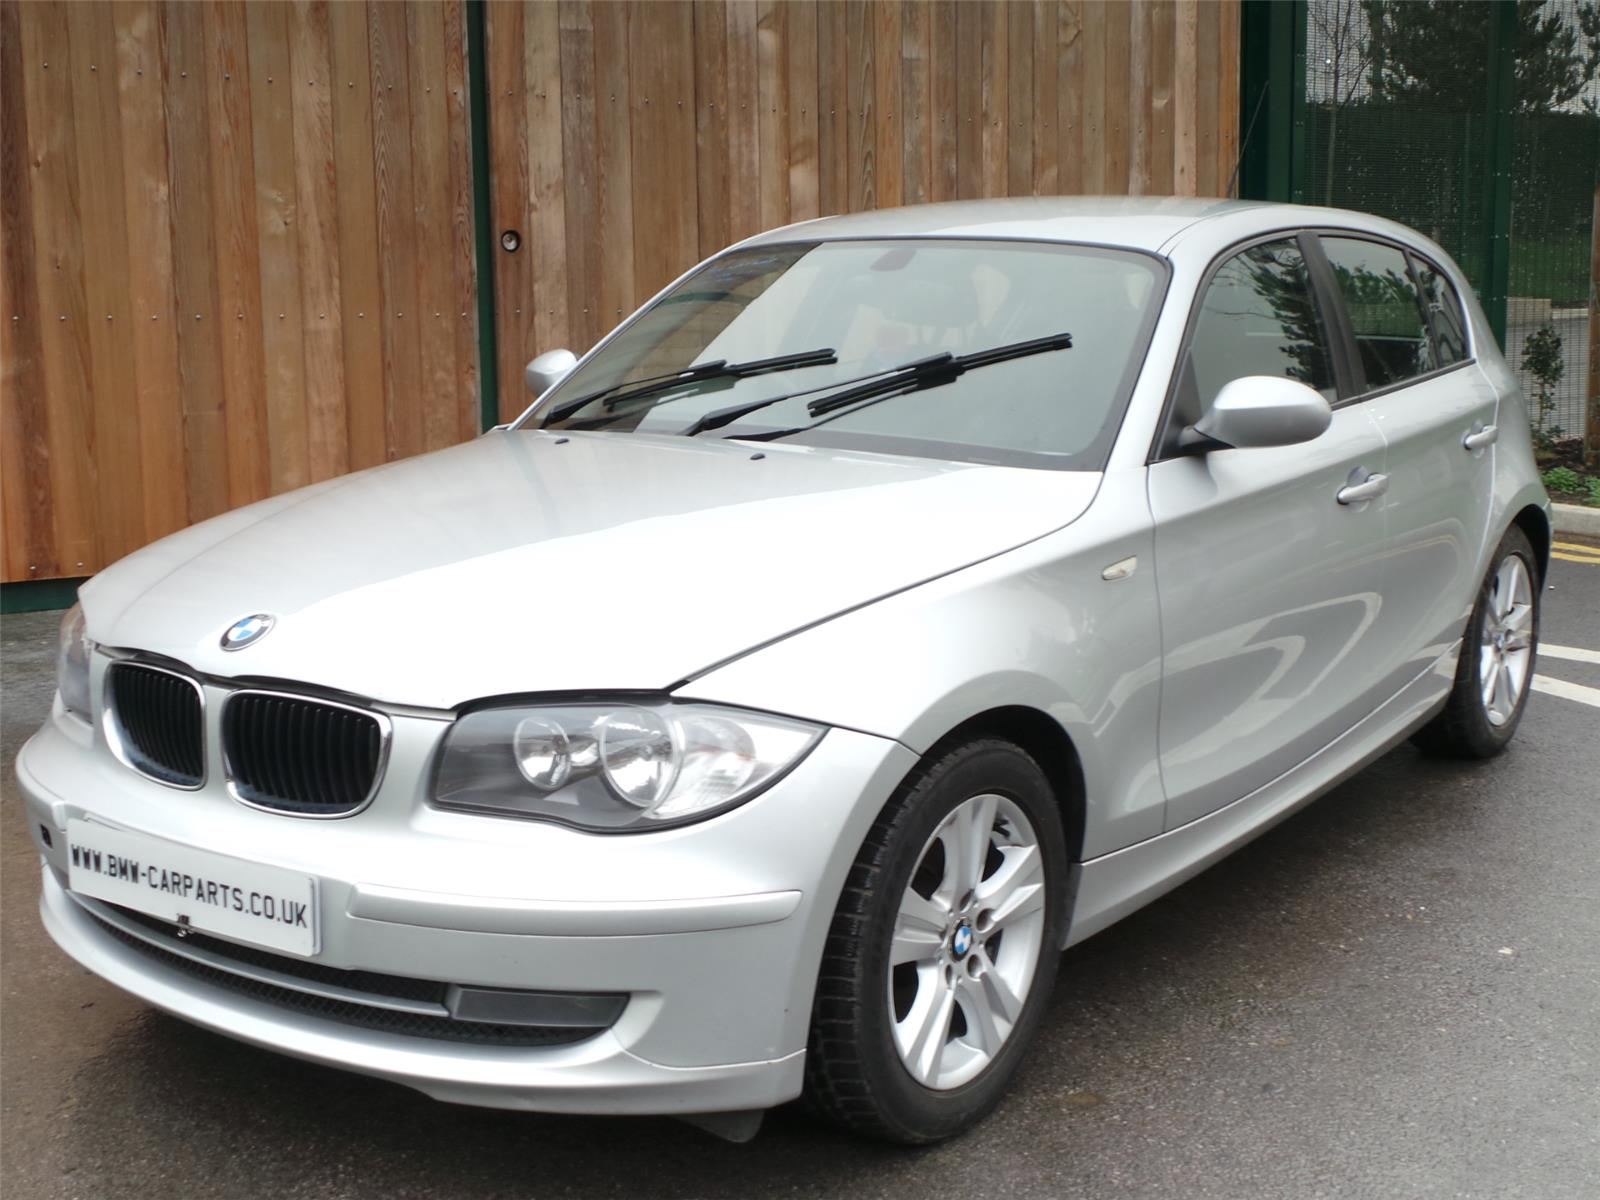 2008 bmw 1 series 118d se 5 door hatchback diesel. Black Bedroom Furniture Sets. Home Design Ideas